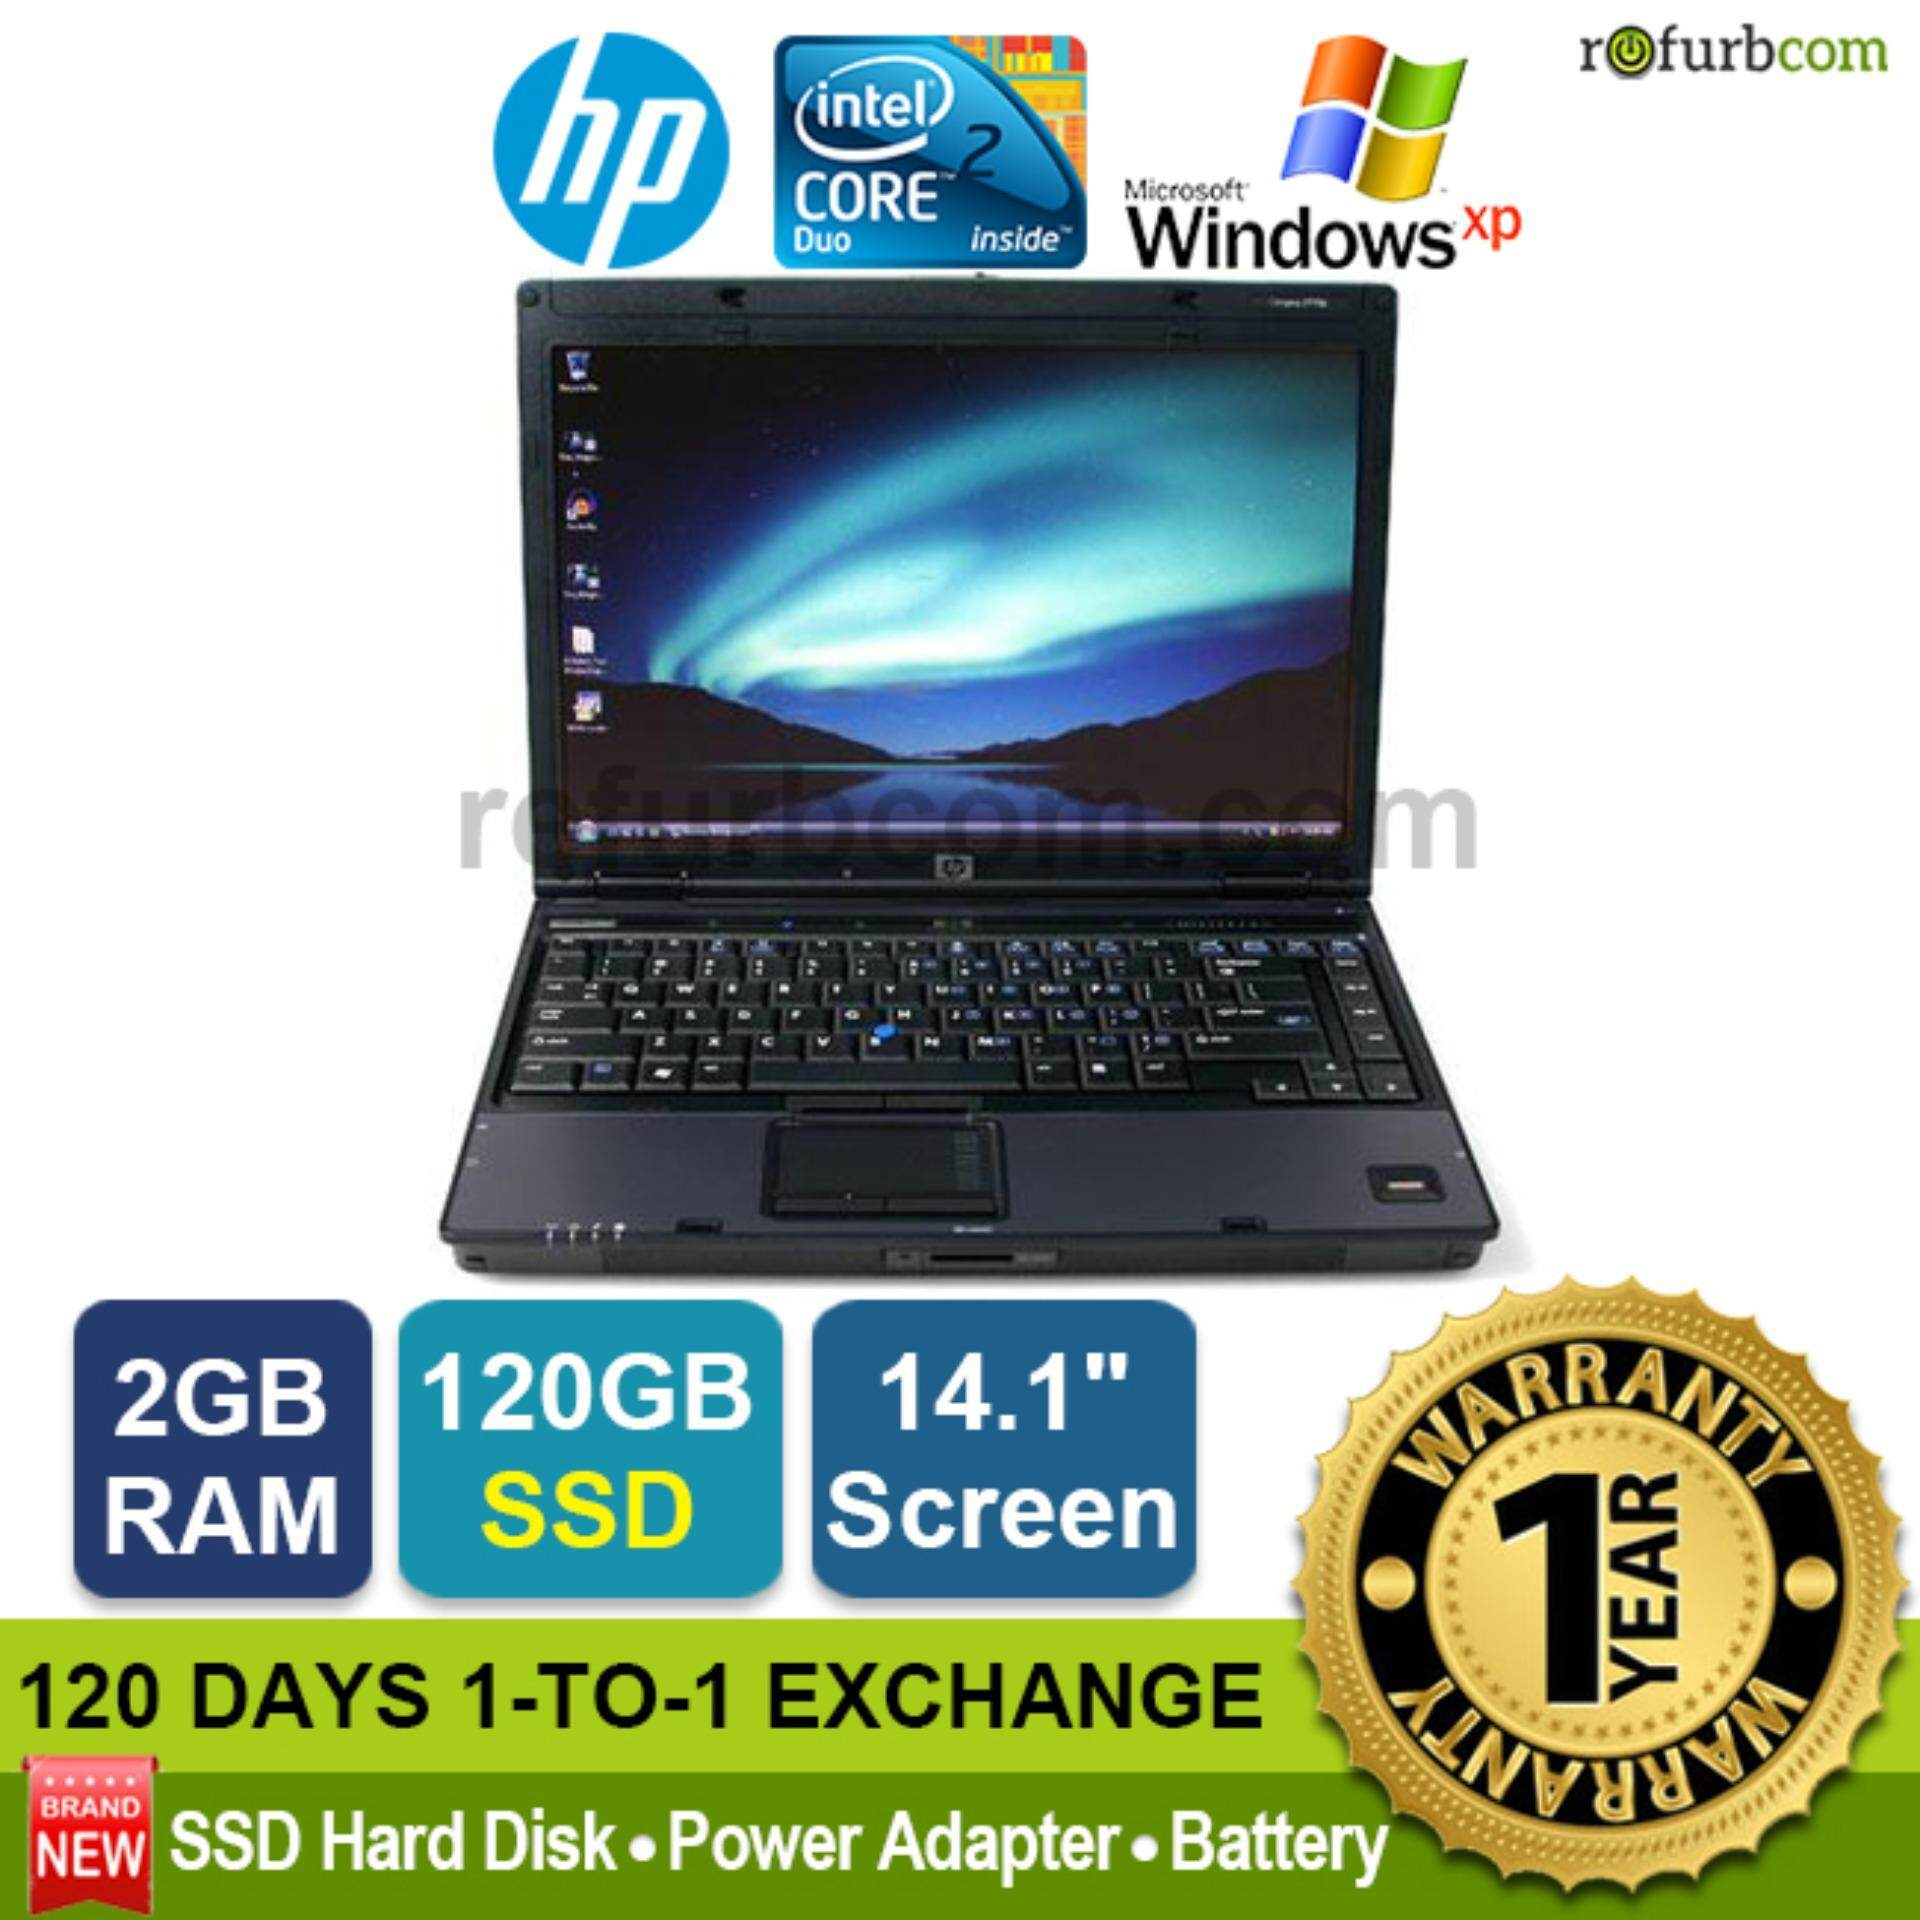 HP COMPAQ 6910 / CORE 2 DUO [refurbished] Malaysia